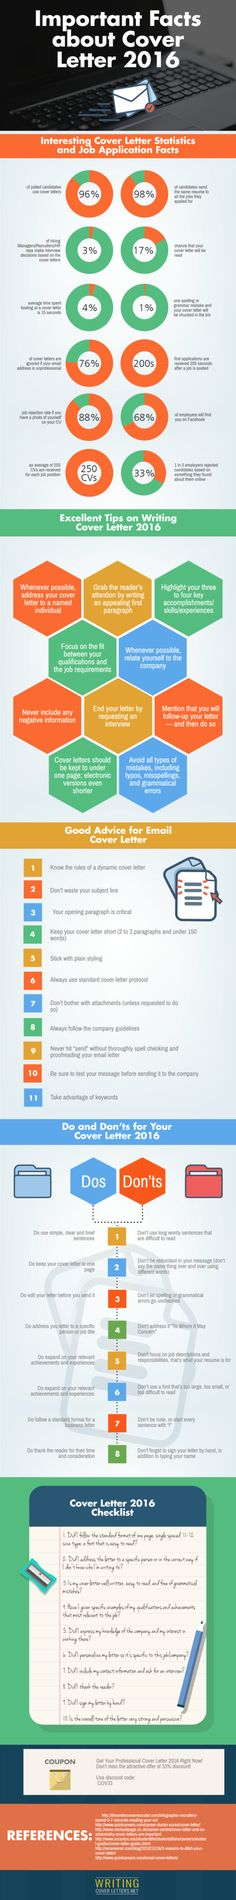 sample cover letter Cover letter tips \ guidelines Job tips - cover letter guidelines